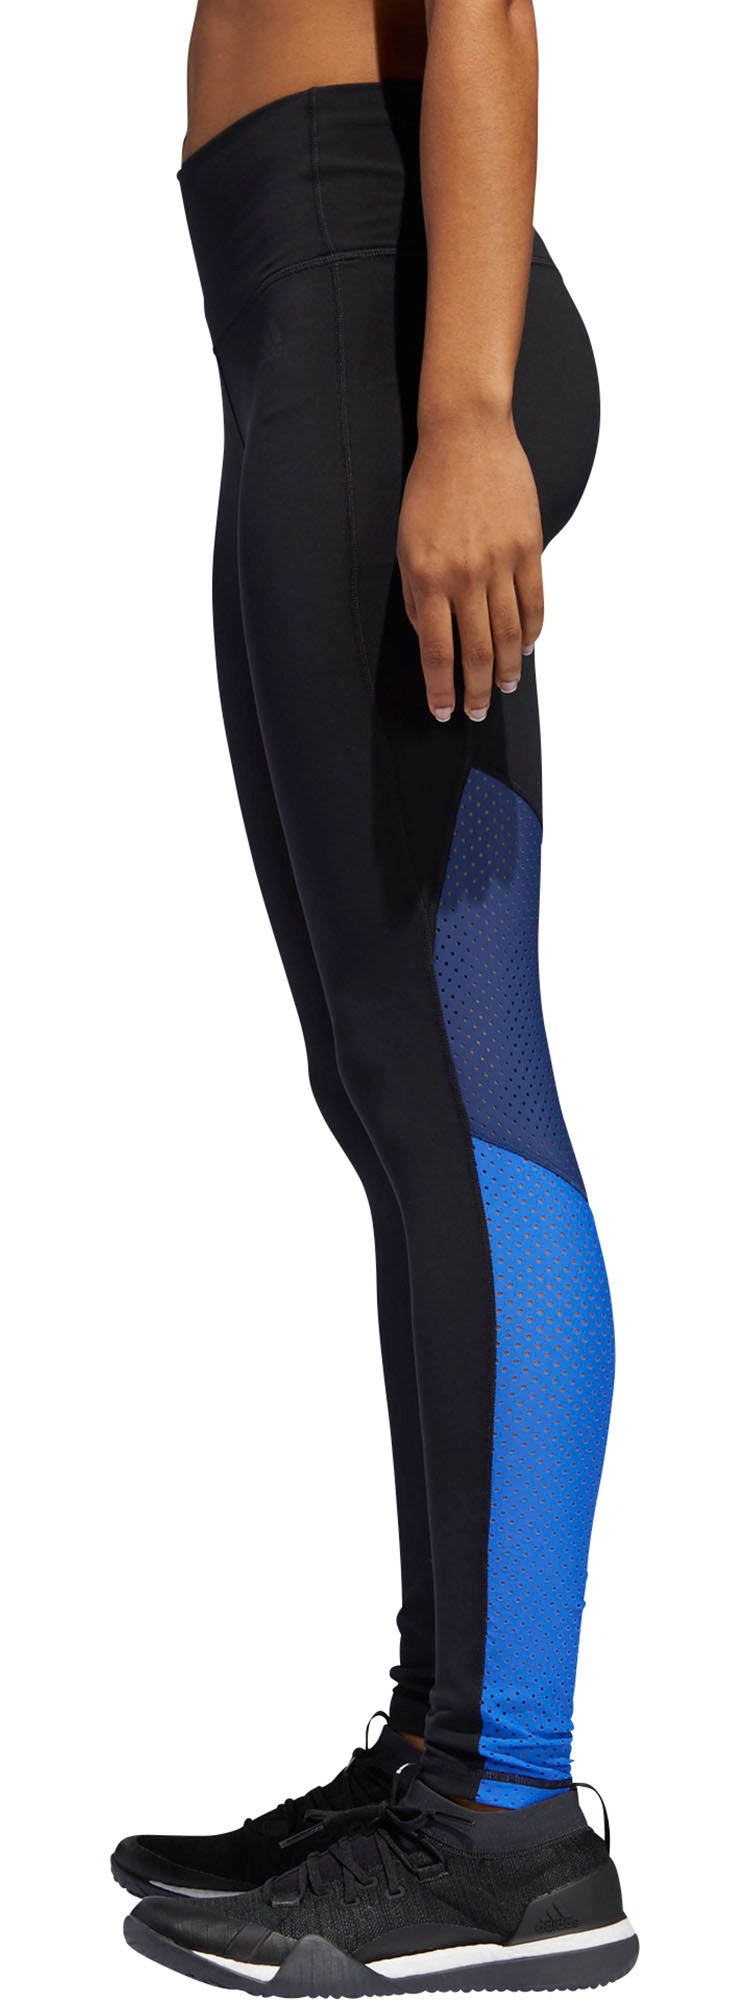 Adidas Women's Believe This Mesh Mix 7/8 Training Tights by Adidas